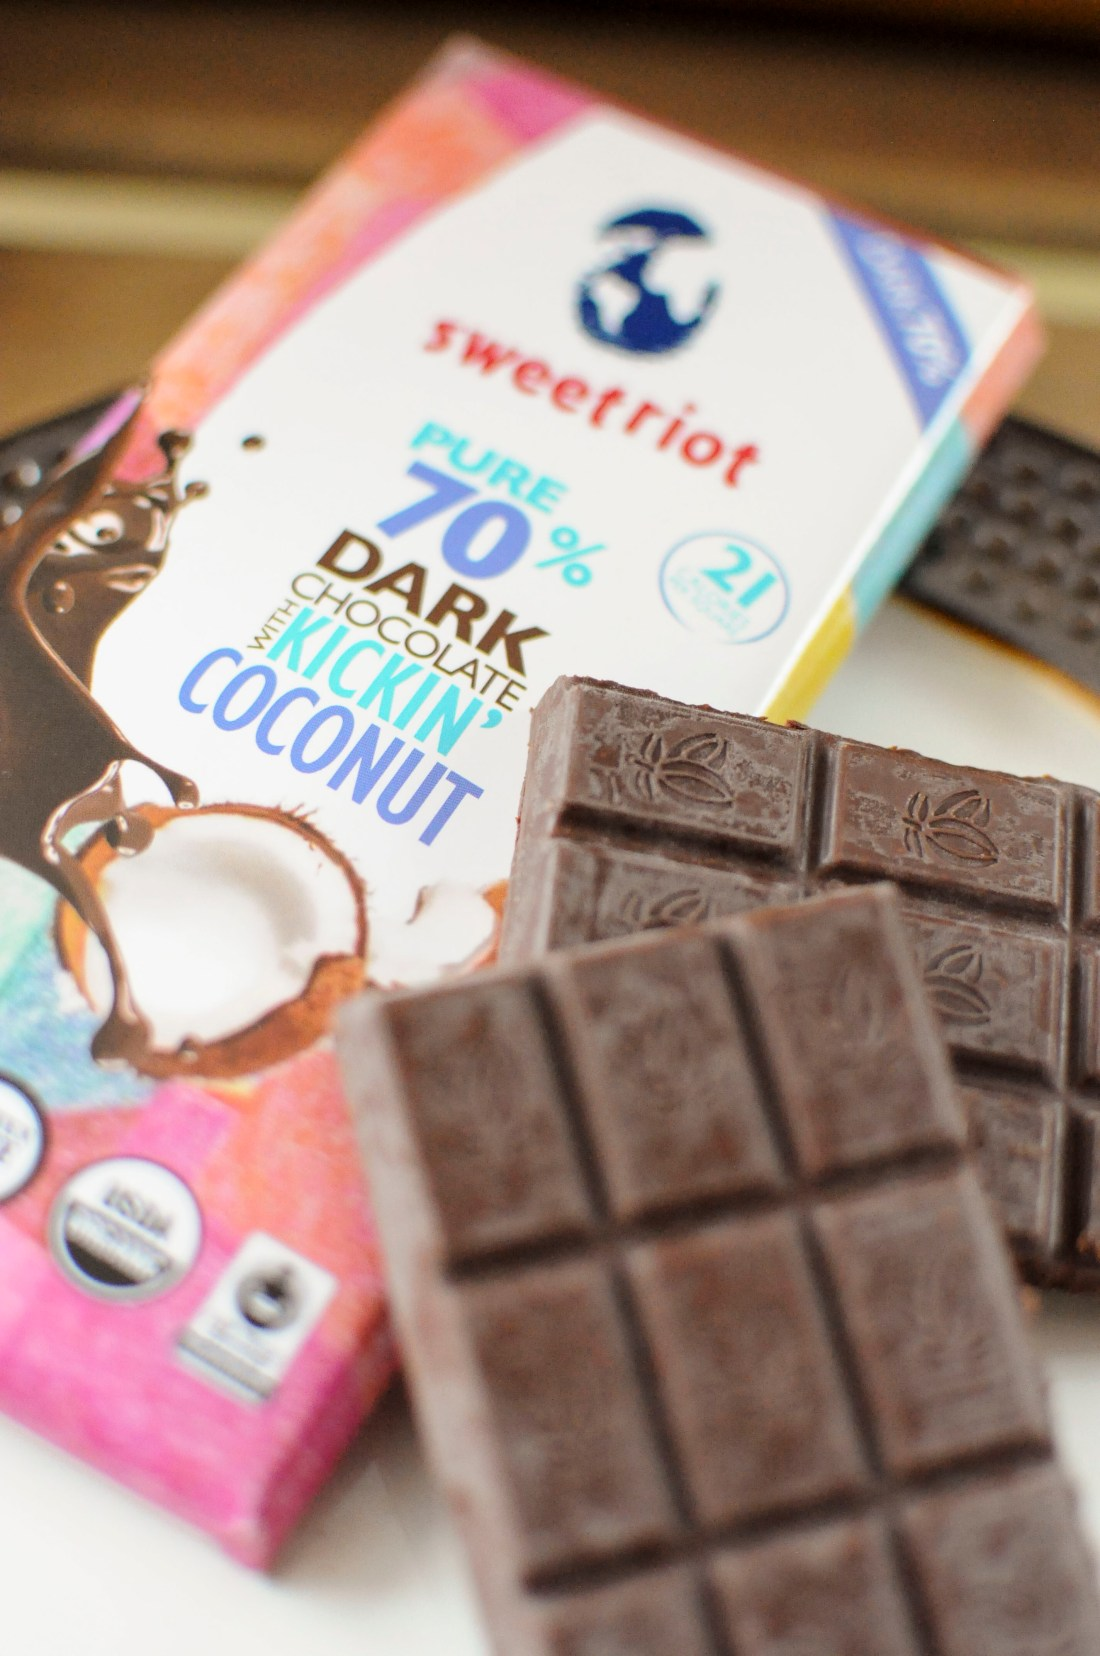 Fair Never Tasted So Good: A Guide to Ethical Chocolate